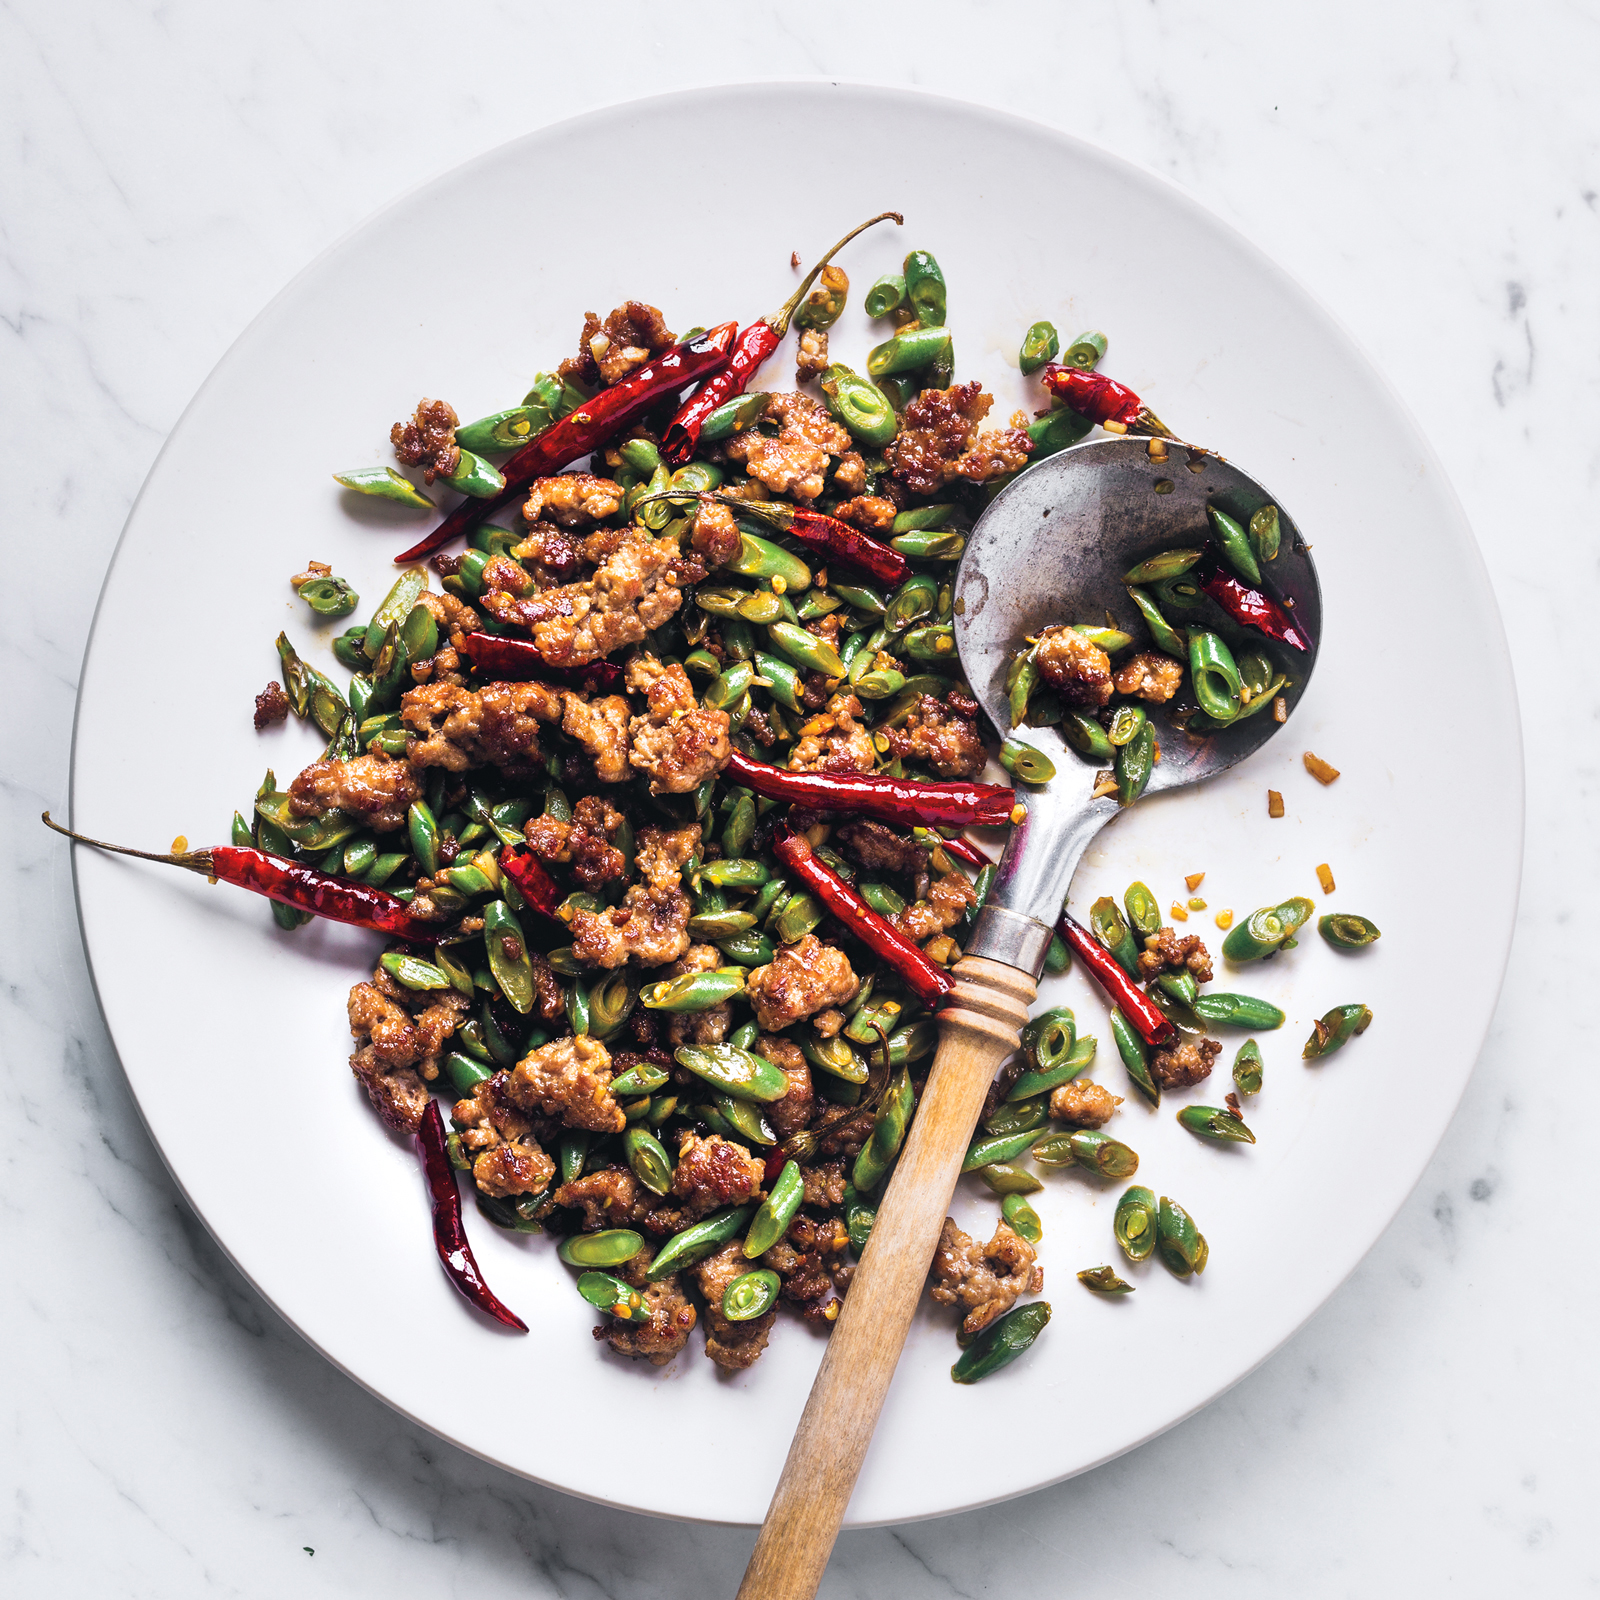 Spicy Pork Stir Fry